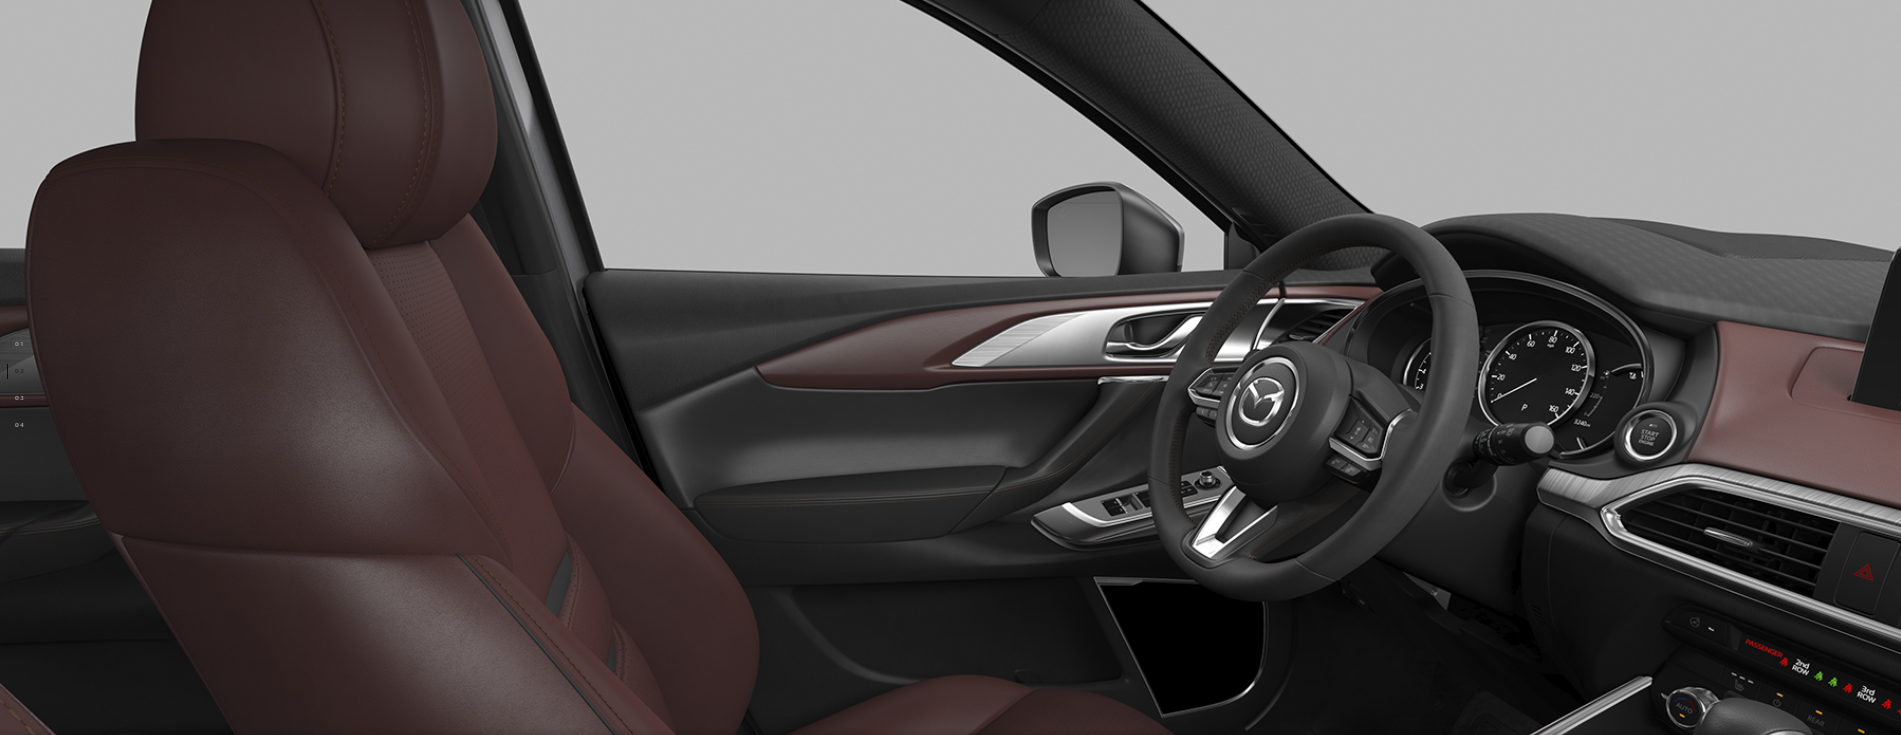 Interior Trim Material And Color Options Of The 2019 Mazda